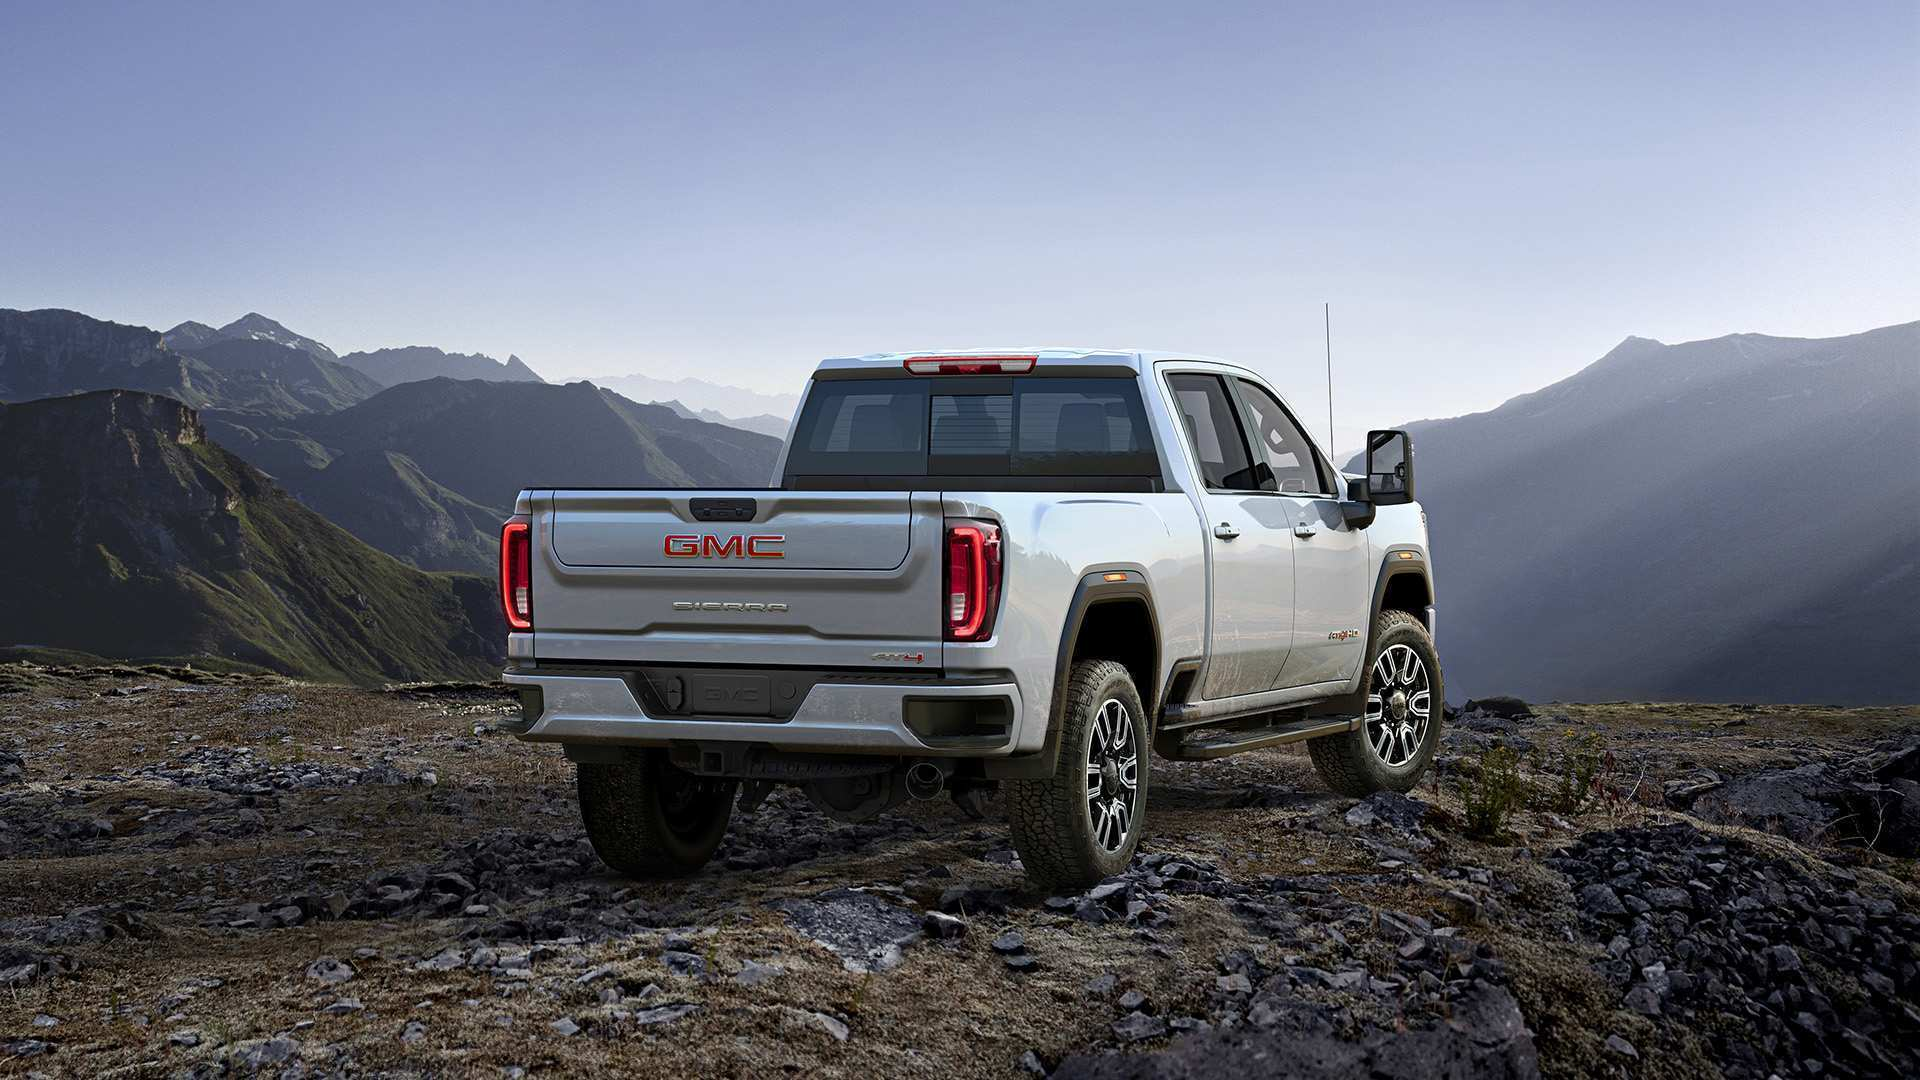 81 New 2020 Gmc Sierra Denali Overview for 2020 Gmc Sierra Denali